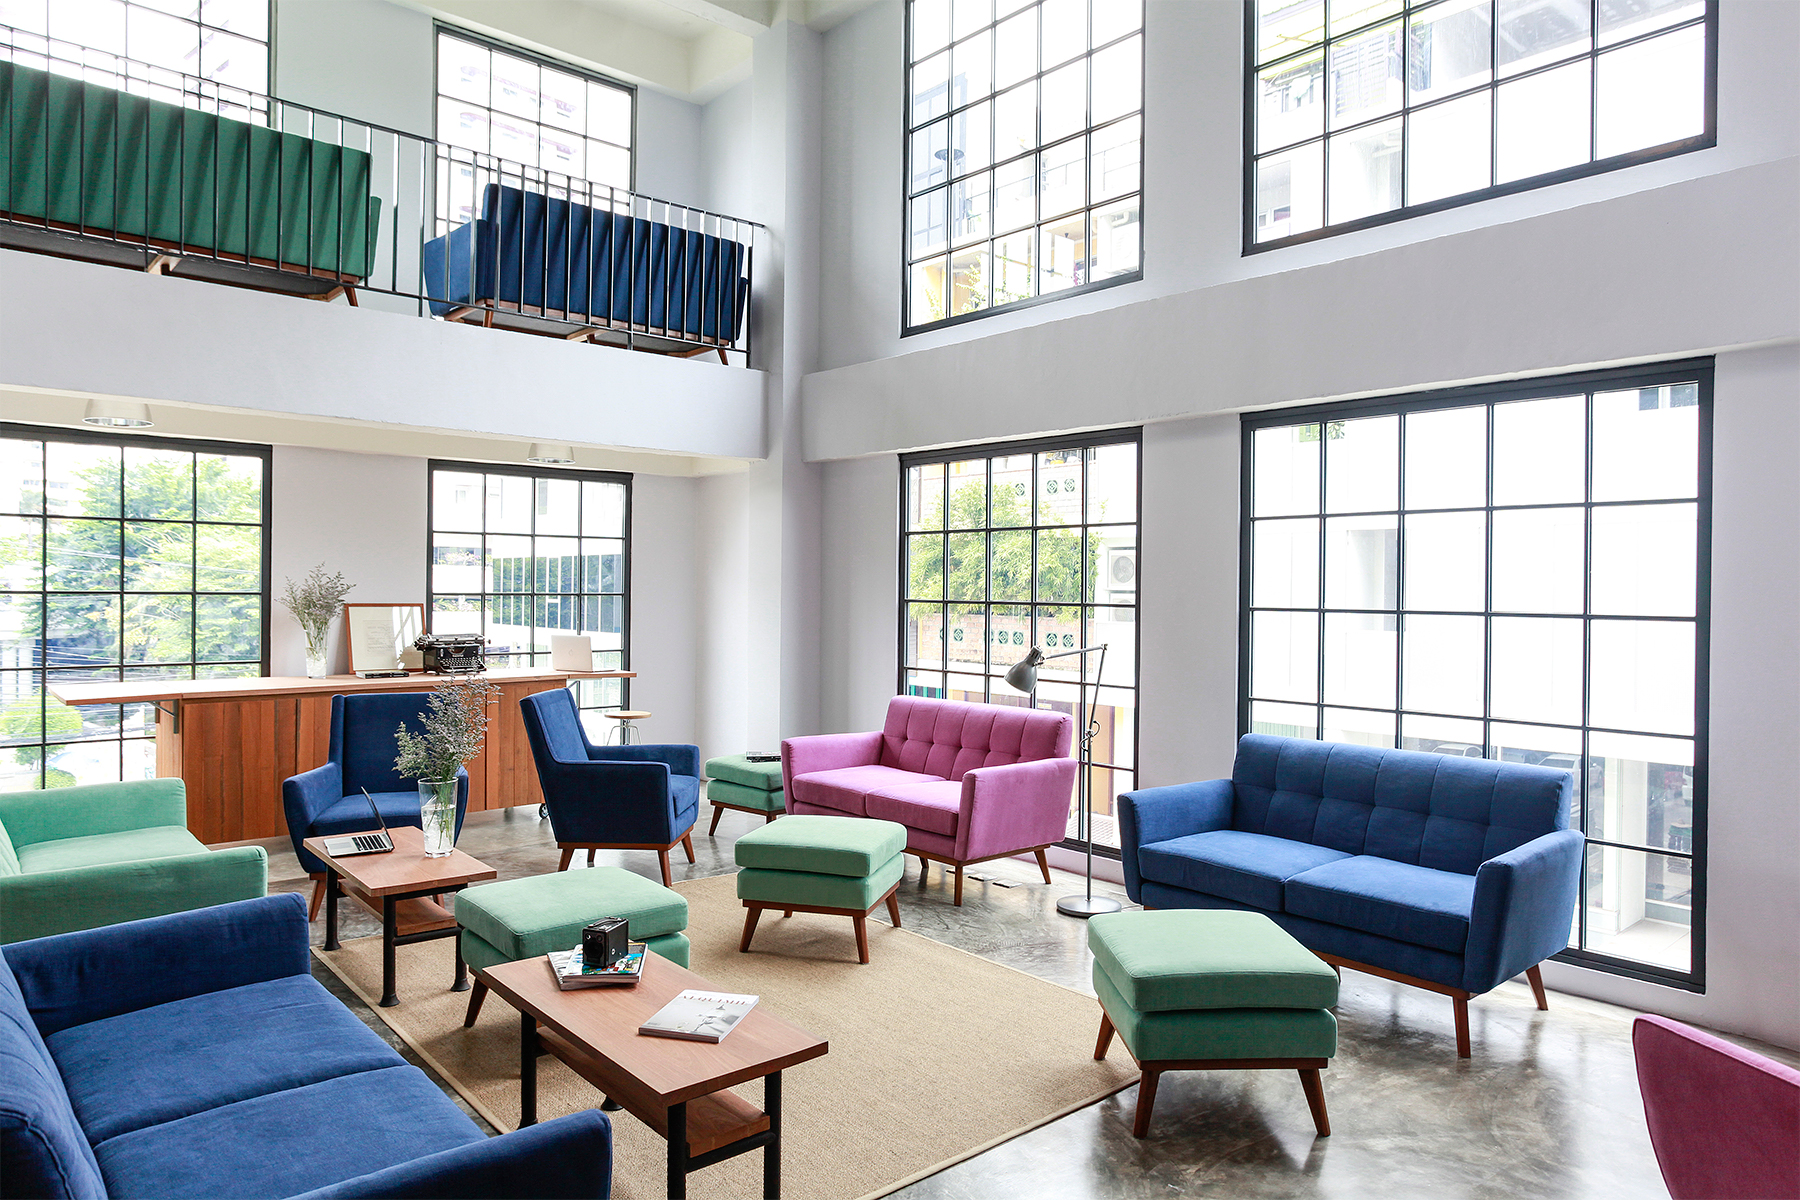 Best coworking spaces in Bangkok - Outsmart Insights